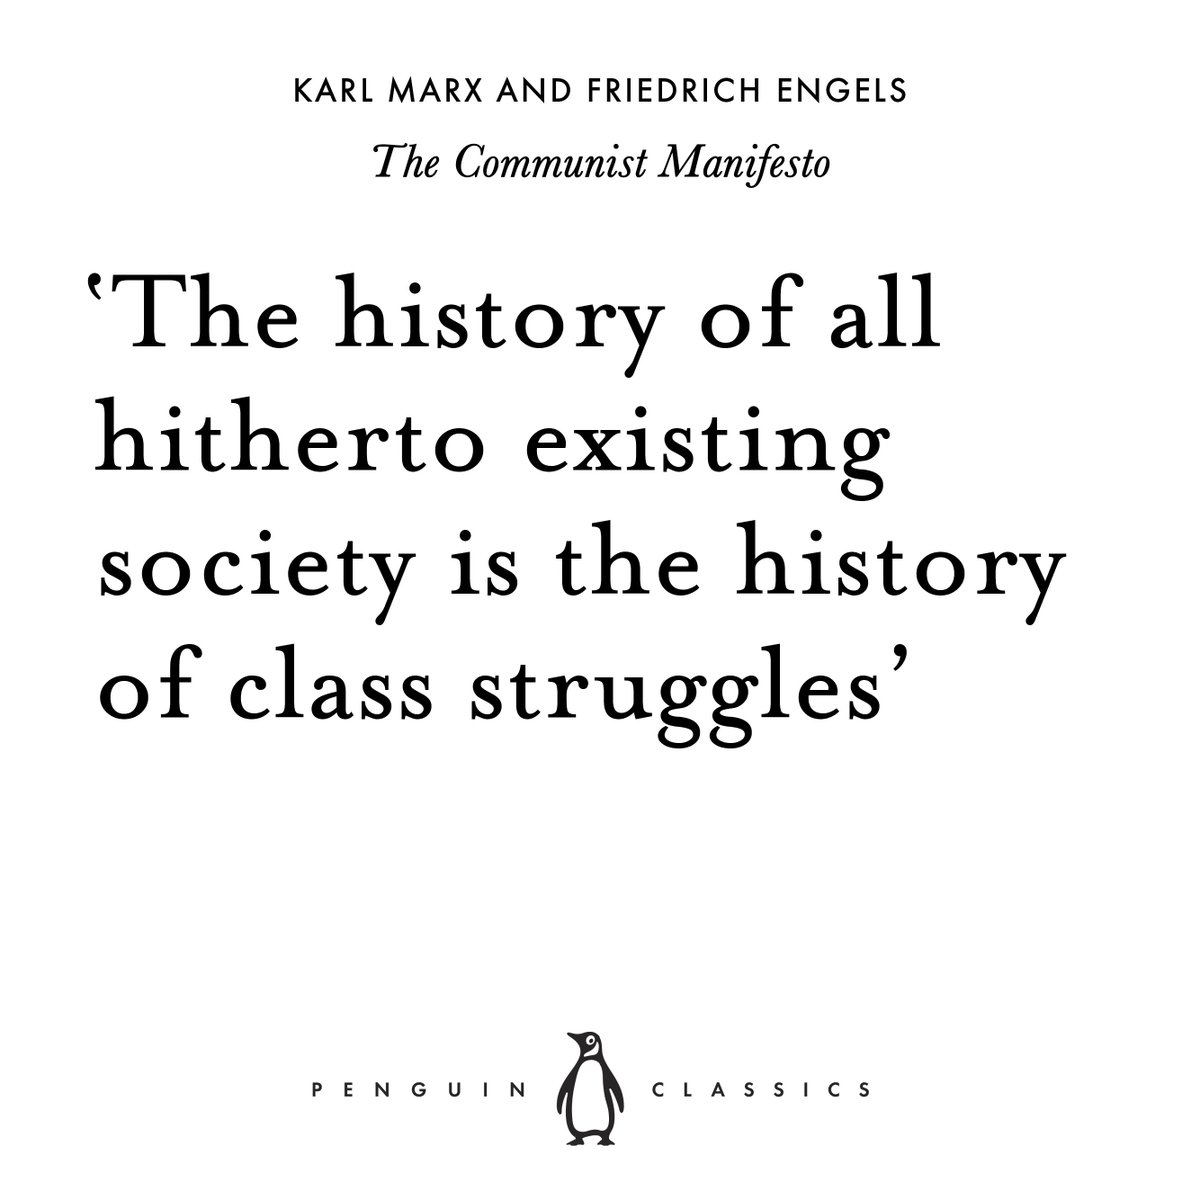 class struggle and the communist manifesto essay Online essay help the immediate aim of he communist is theformation of the proletariat into a class, overthrow the bourgeois supremacy, conquest of political power by the proletariat whenclass distinctions have disappeared and all production has been concentrated in the hands of.